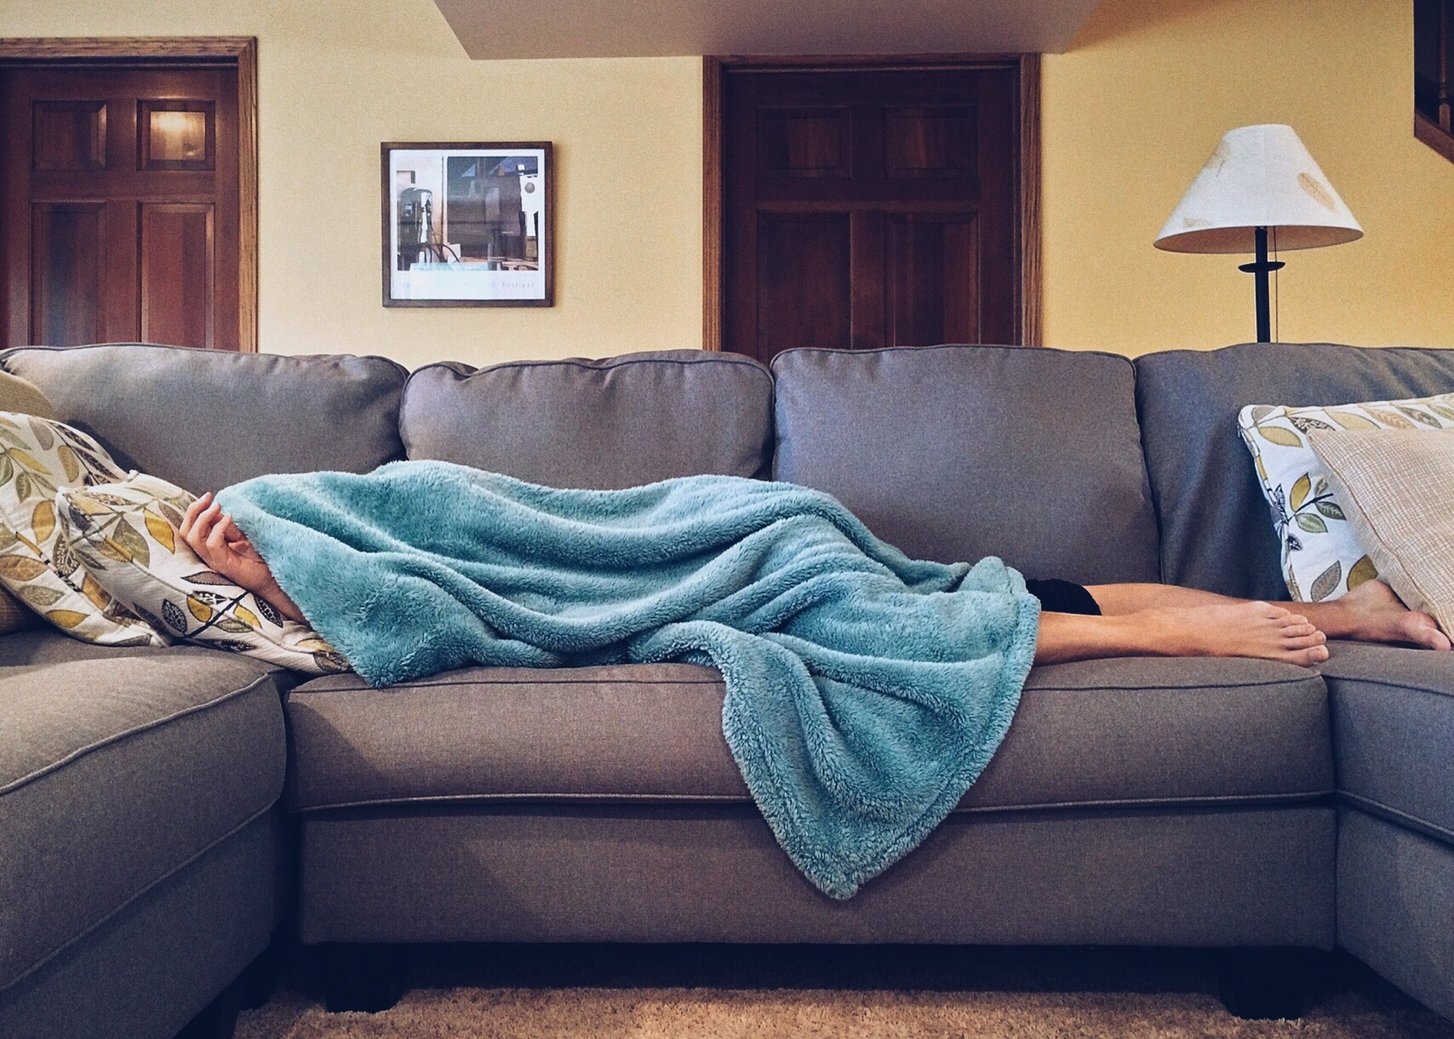 How to Properly Clean Your Home After Someone Is Sick by Cleanhome Sussex